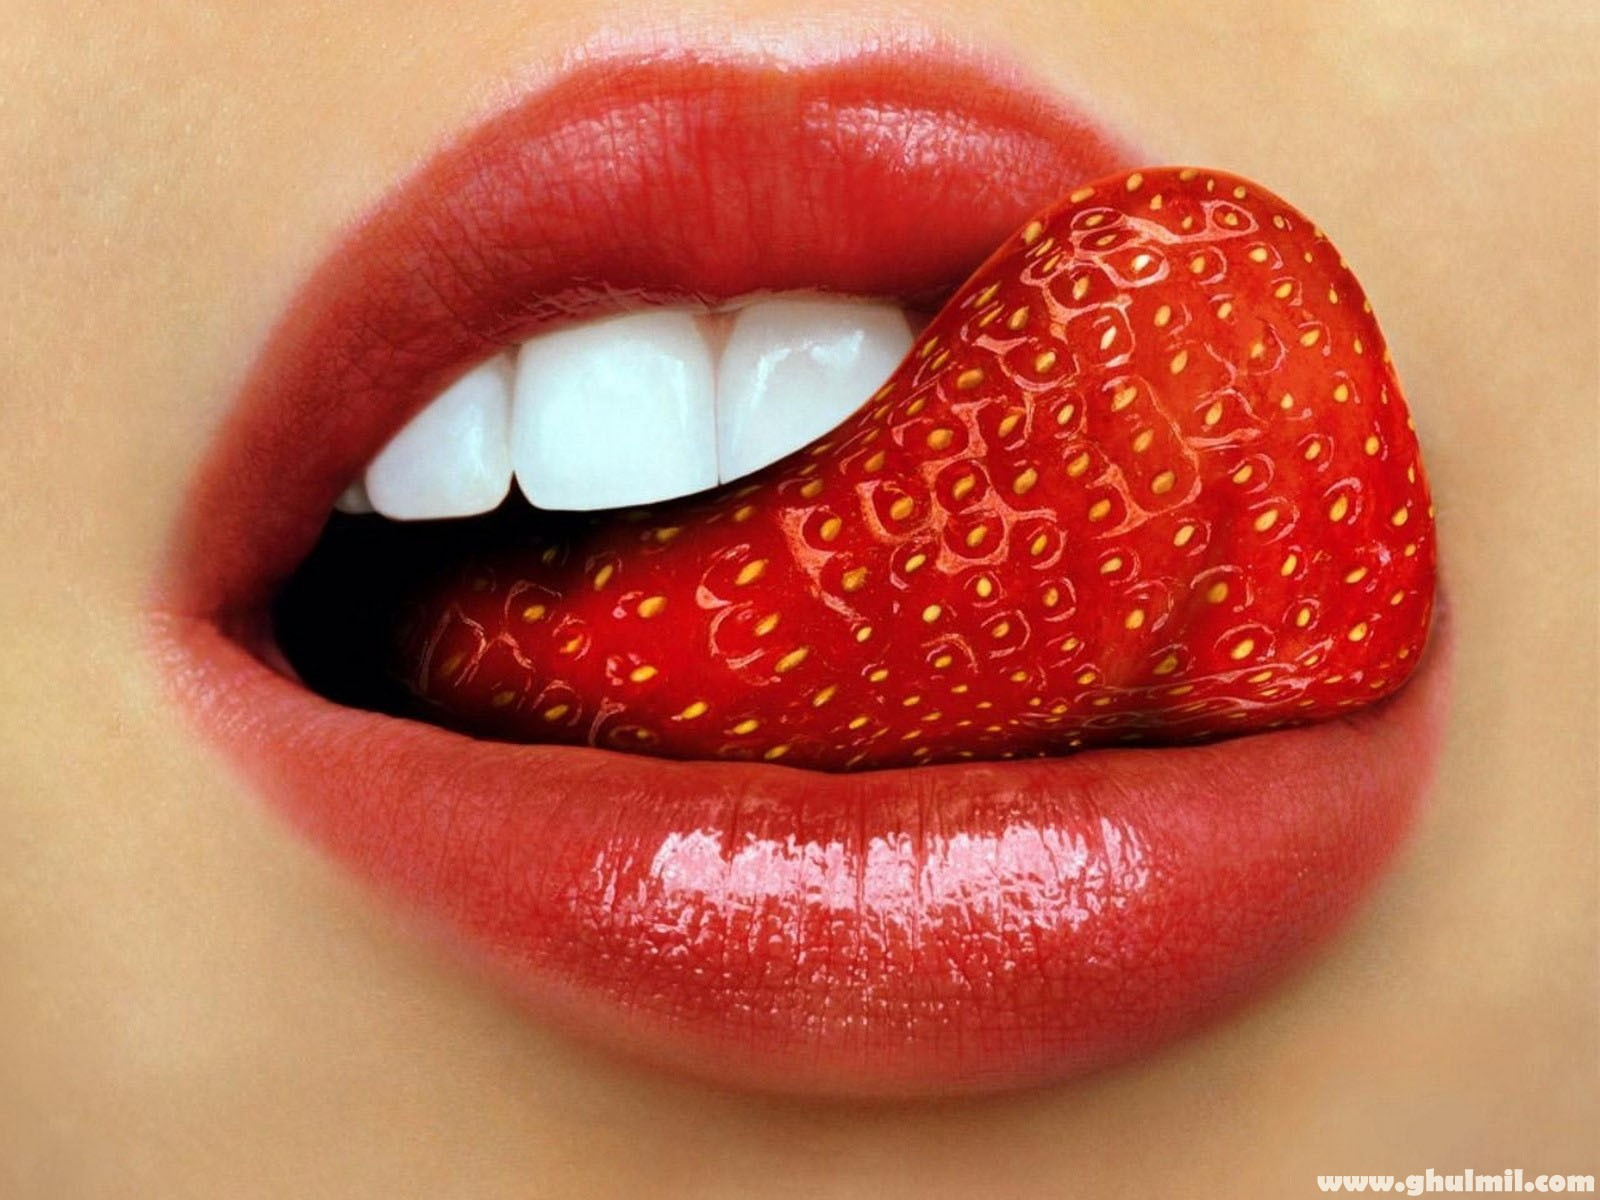 Beautiful Sexy Strawberry Tongue Lips Wallpaper For Desktops Computers 1600x1200